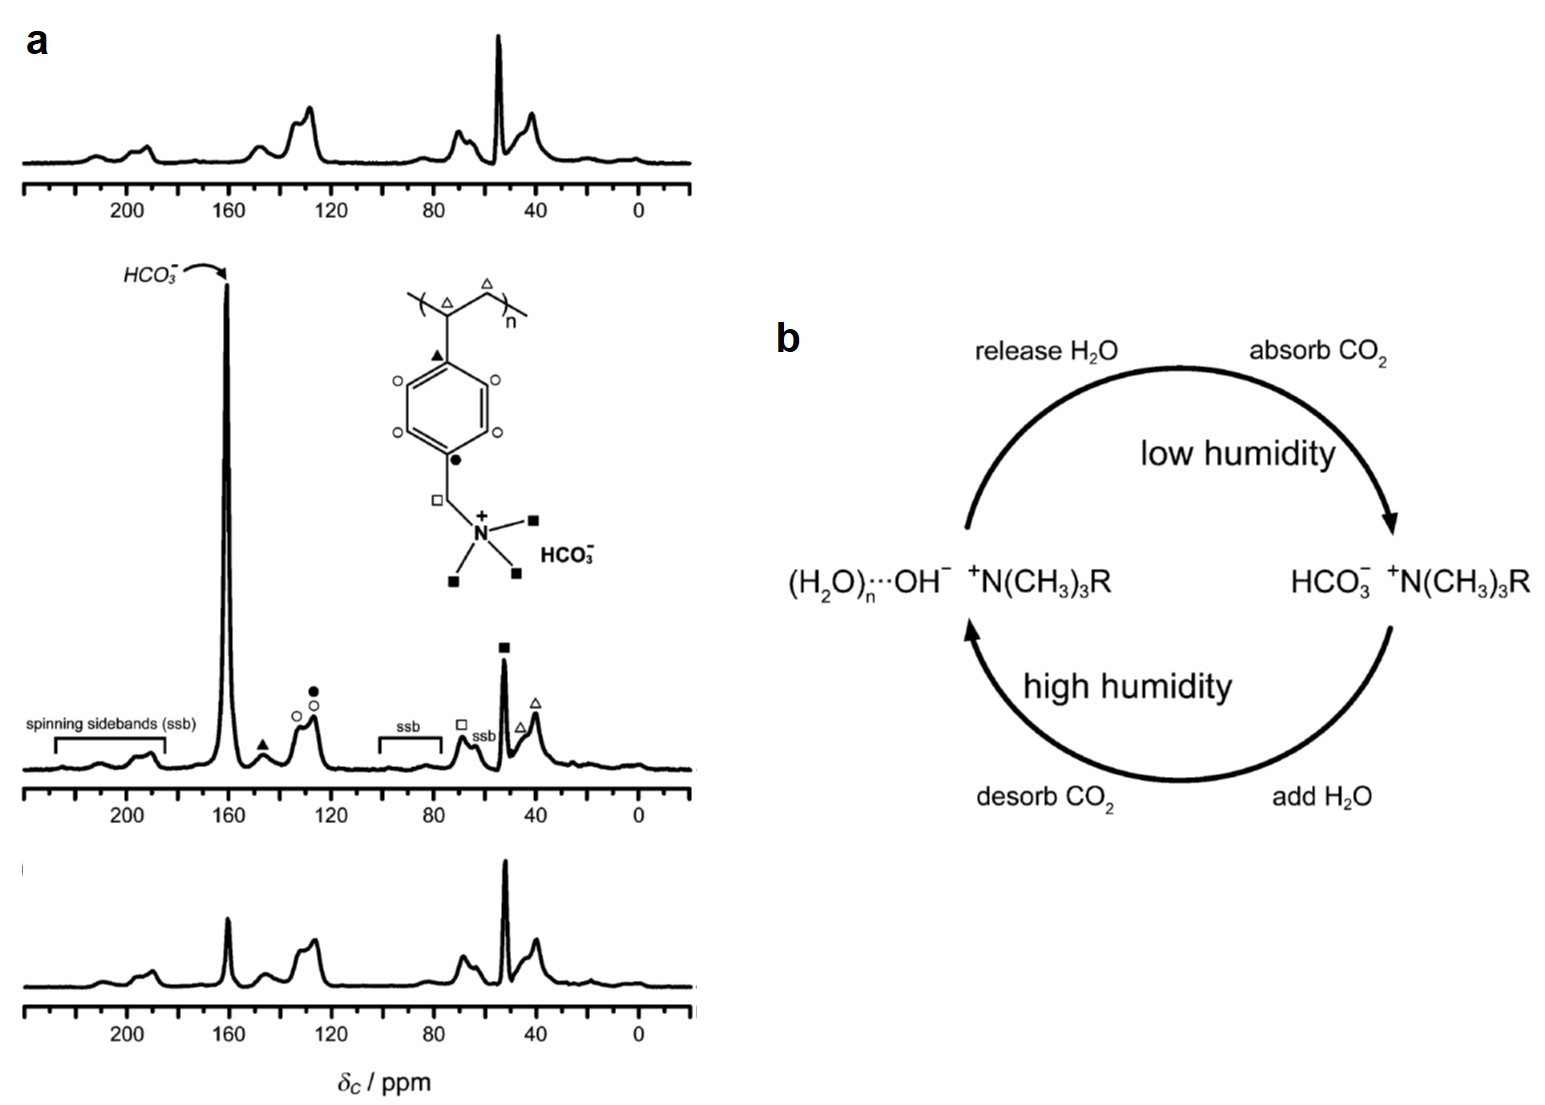 hight resolution of  a the solid state 13c nmr spectra of the humidity swing polymeric absorbent structure shown in the inset of the middle spectrum itself top